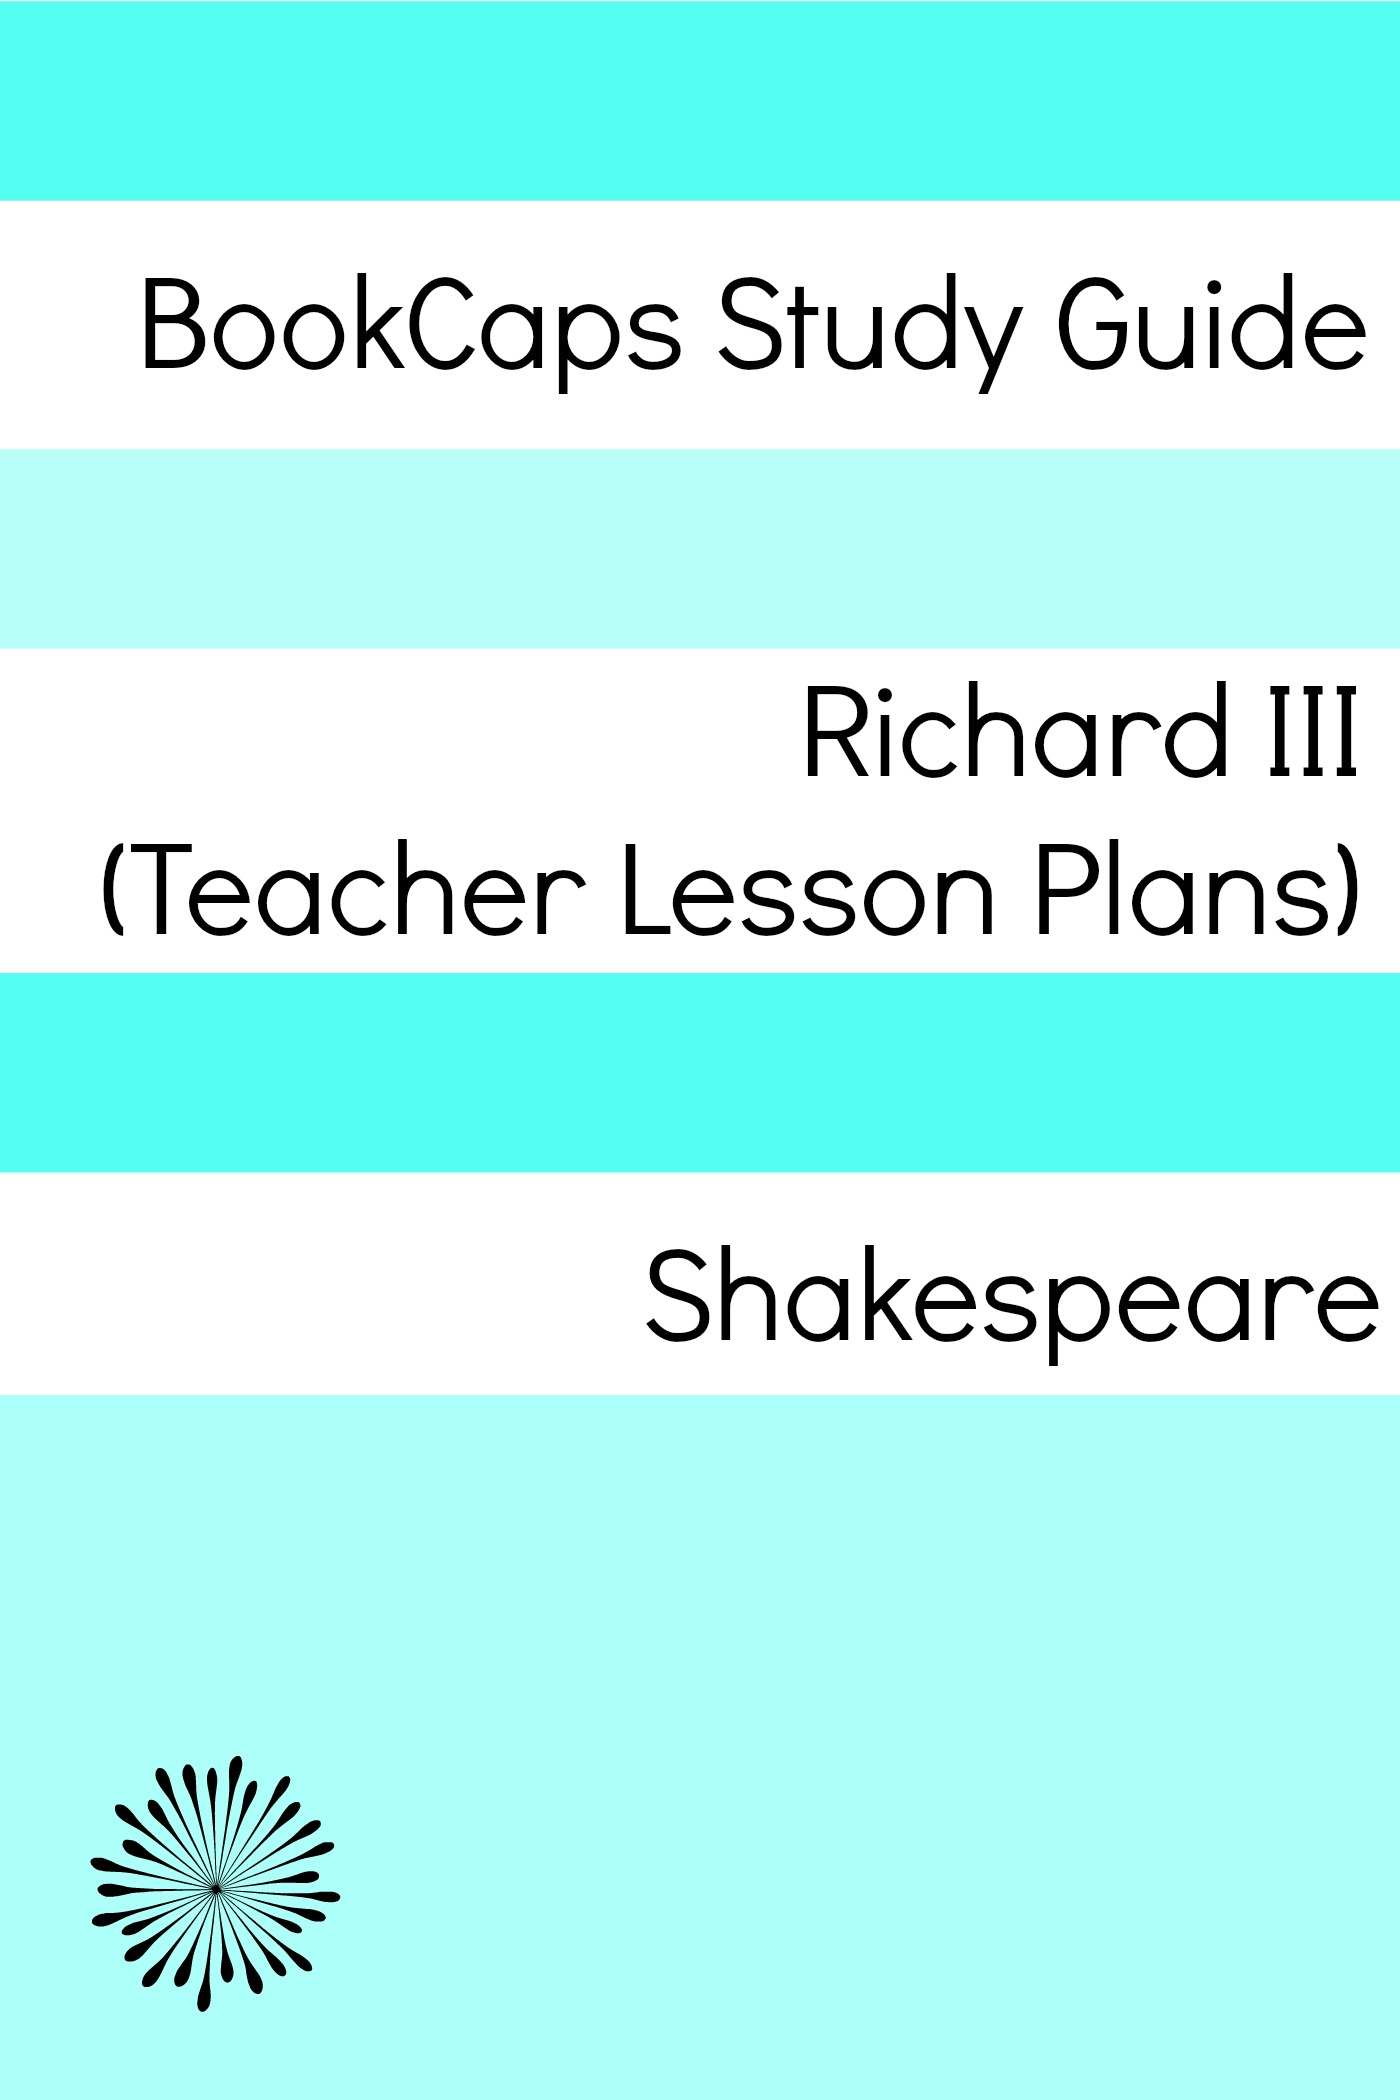 Richard III Teacher Lesson Plans